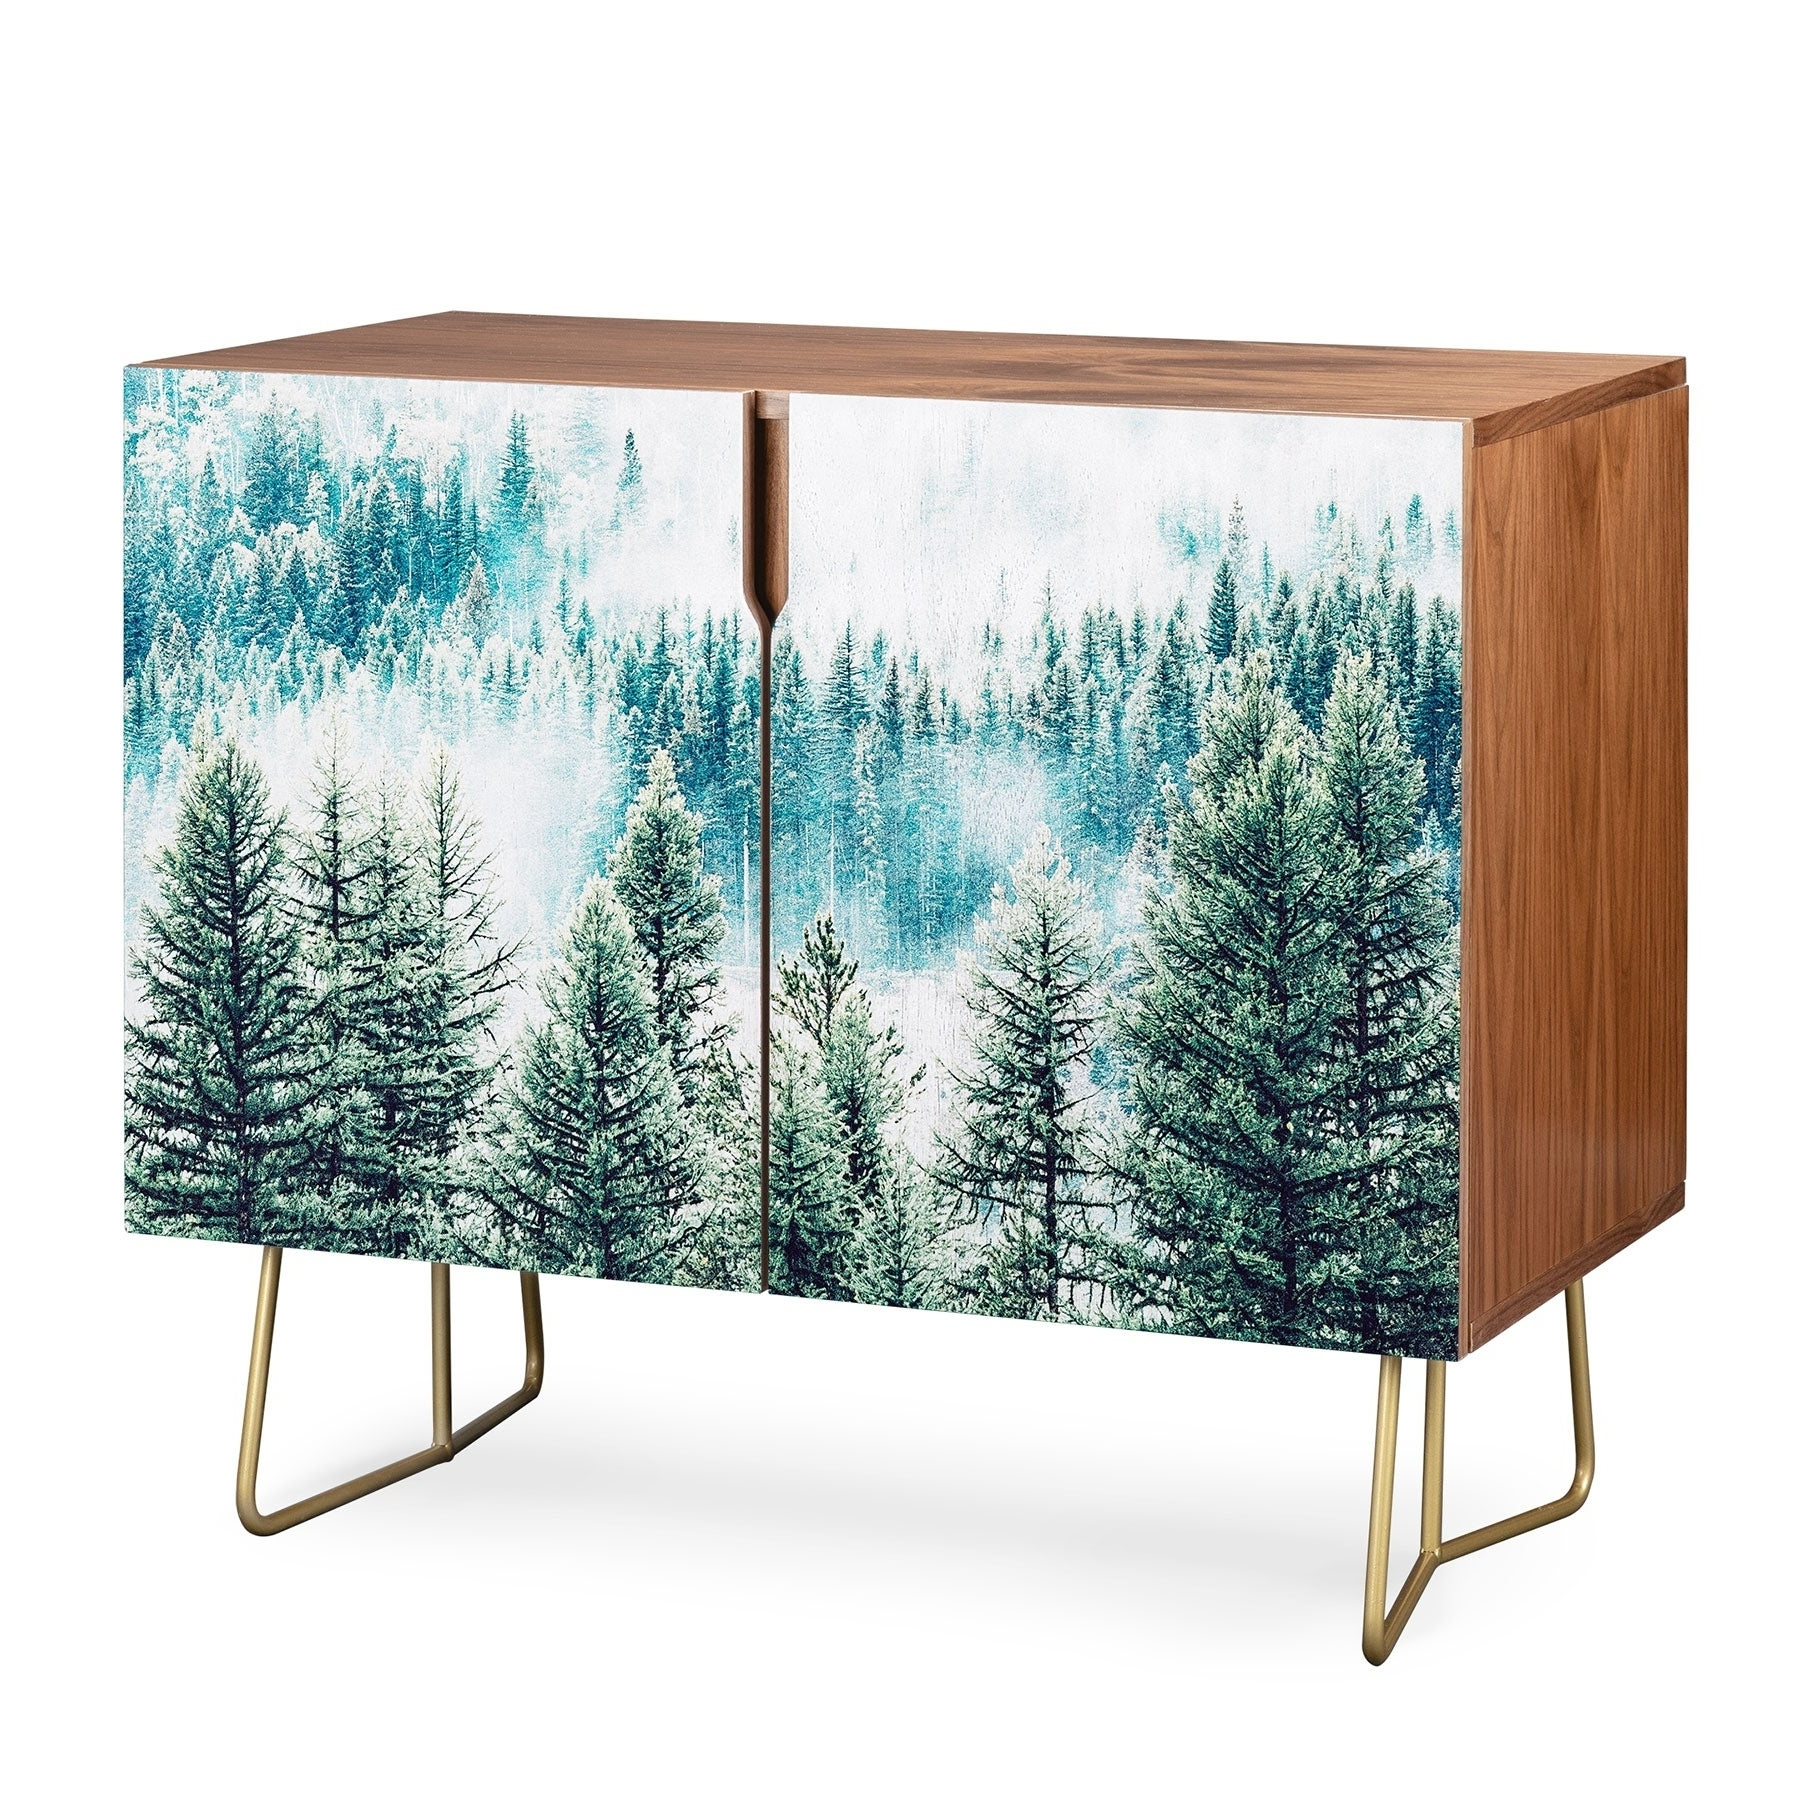 Deny Designs Forest Fog Credenza (birch Or Walnut, 2 Leg Options) Intended For Oenomel Credenzas (View 11 of 20)